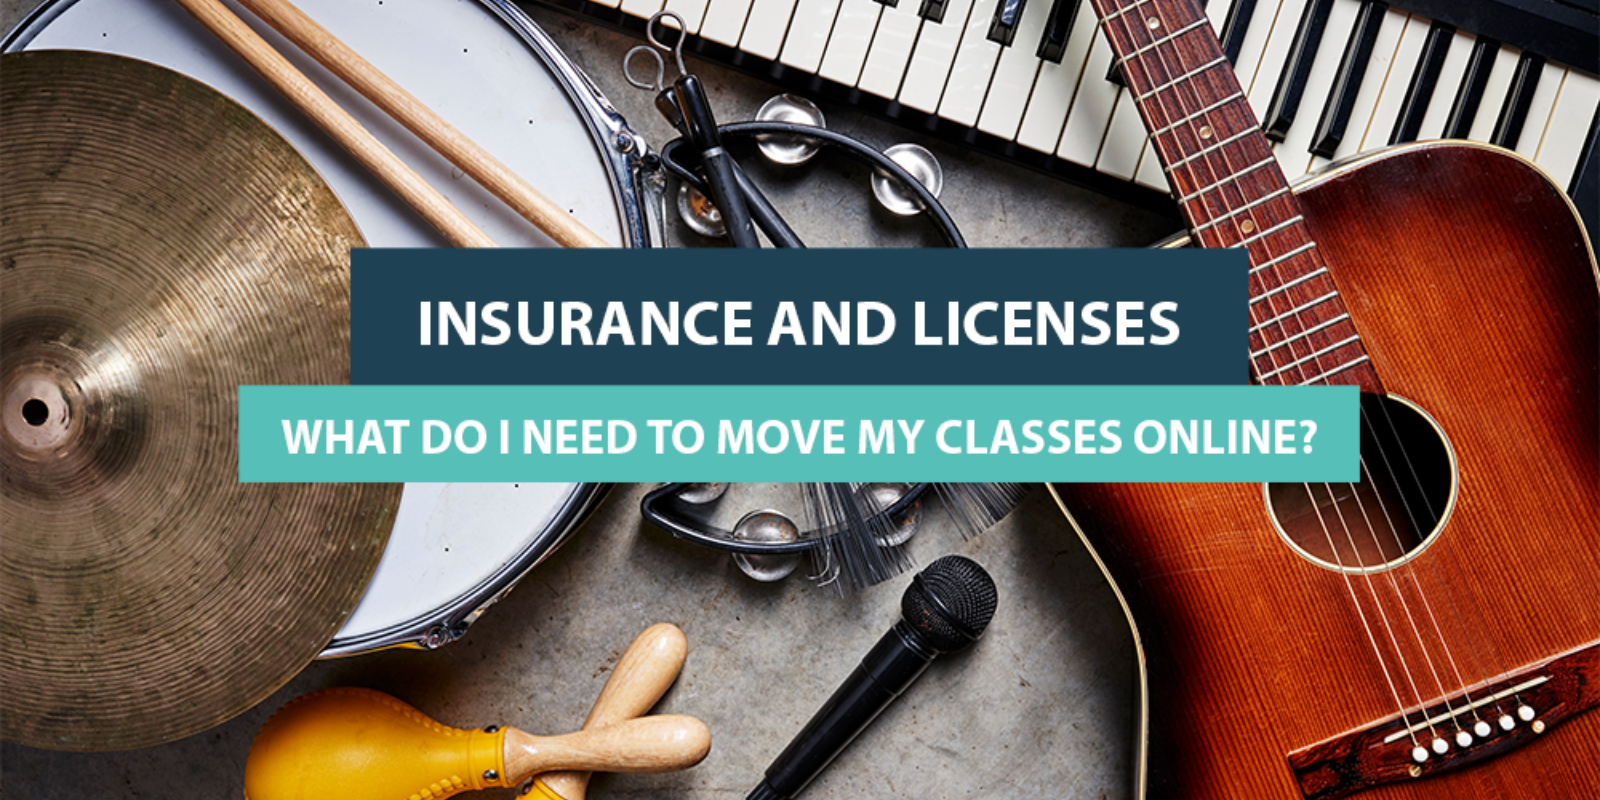 Insurance and Licenses: What Do I Need to Move My Classes Online?